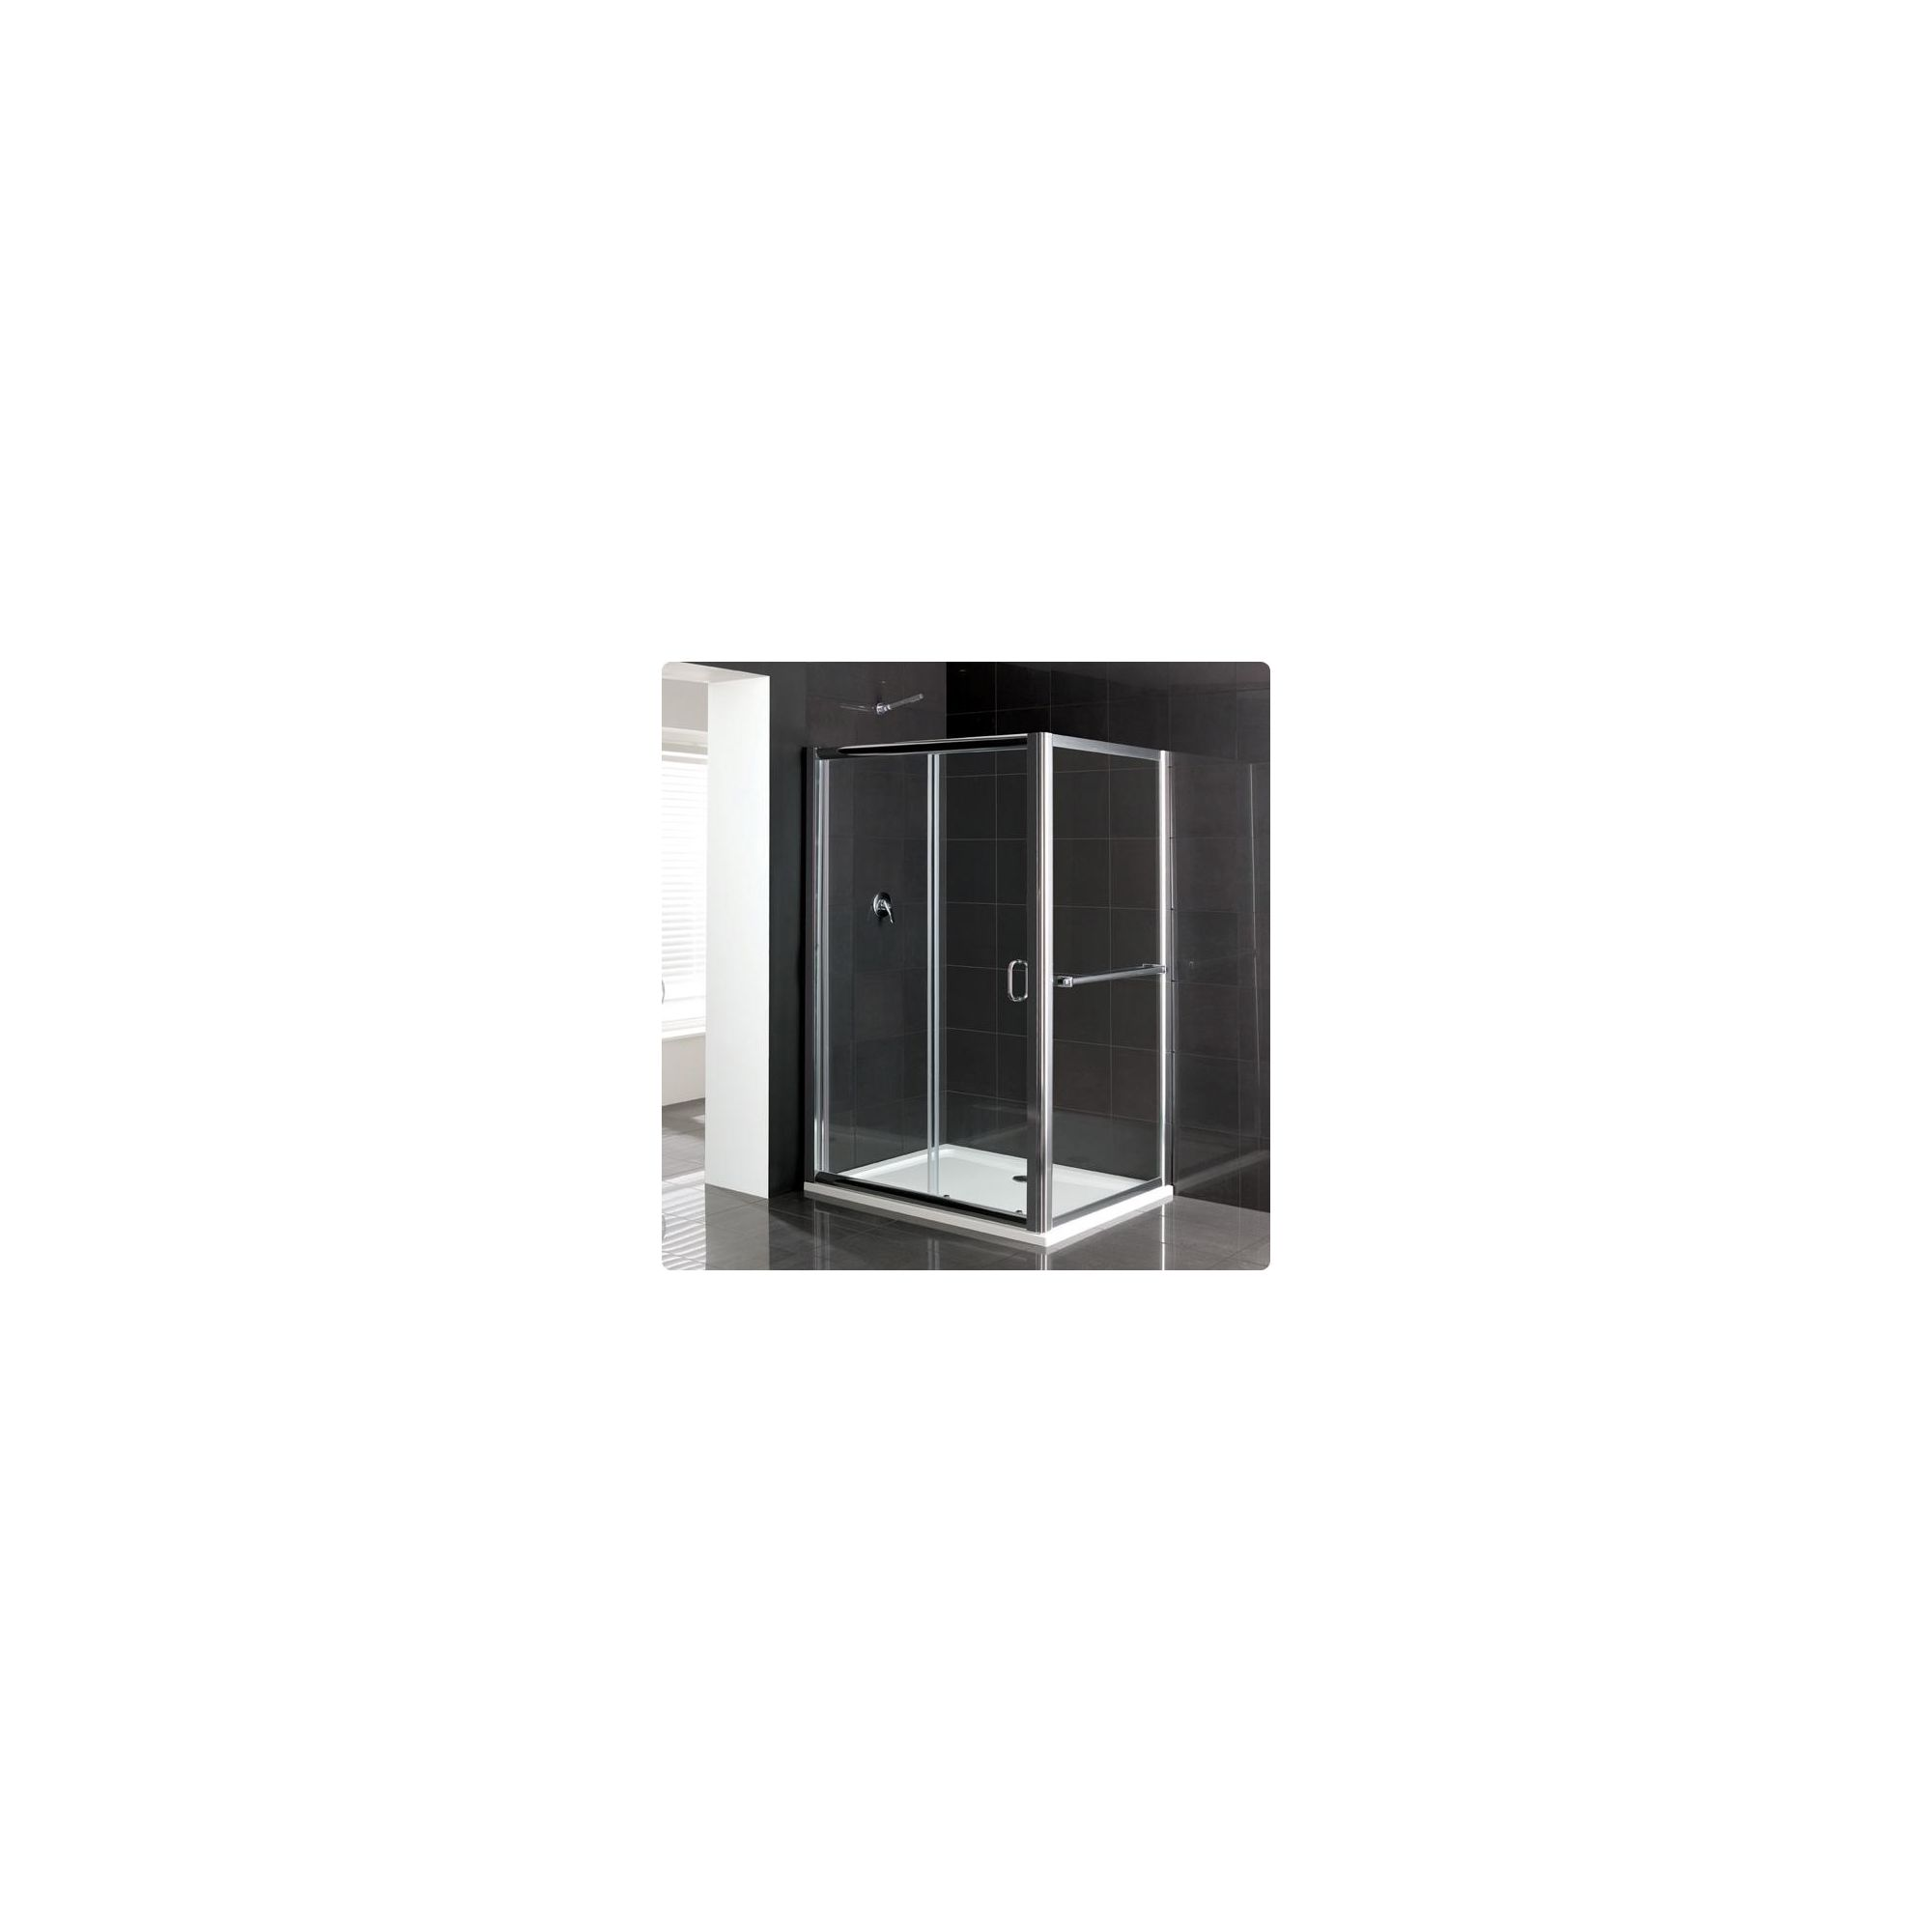 Duchy Elite Silver Sliding Door Shower Enclosure with Towel Rail, 1100mm x 760mm, Standard Tray, 6mm Glass at Tesco Direct